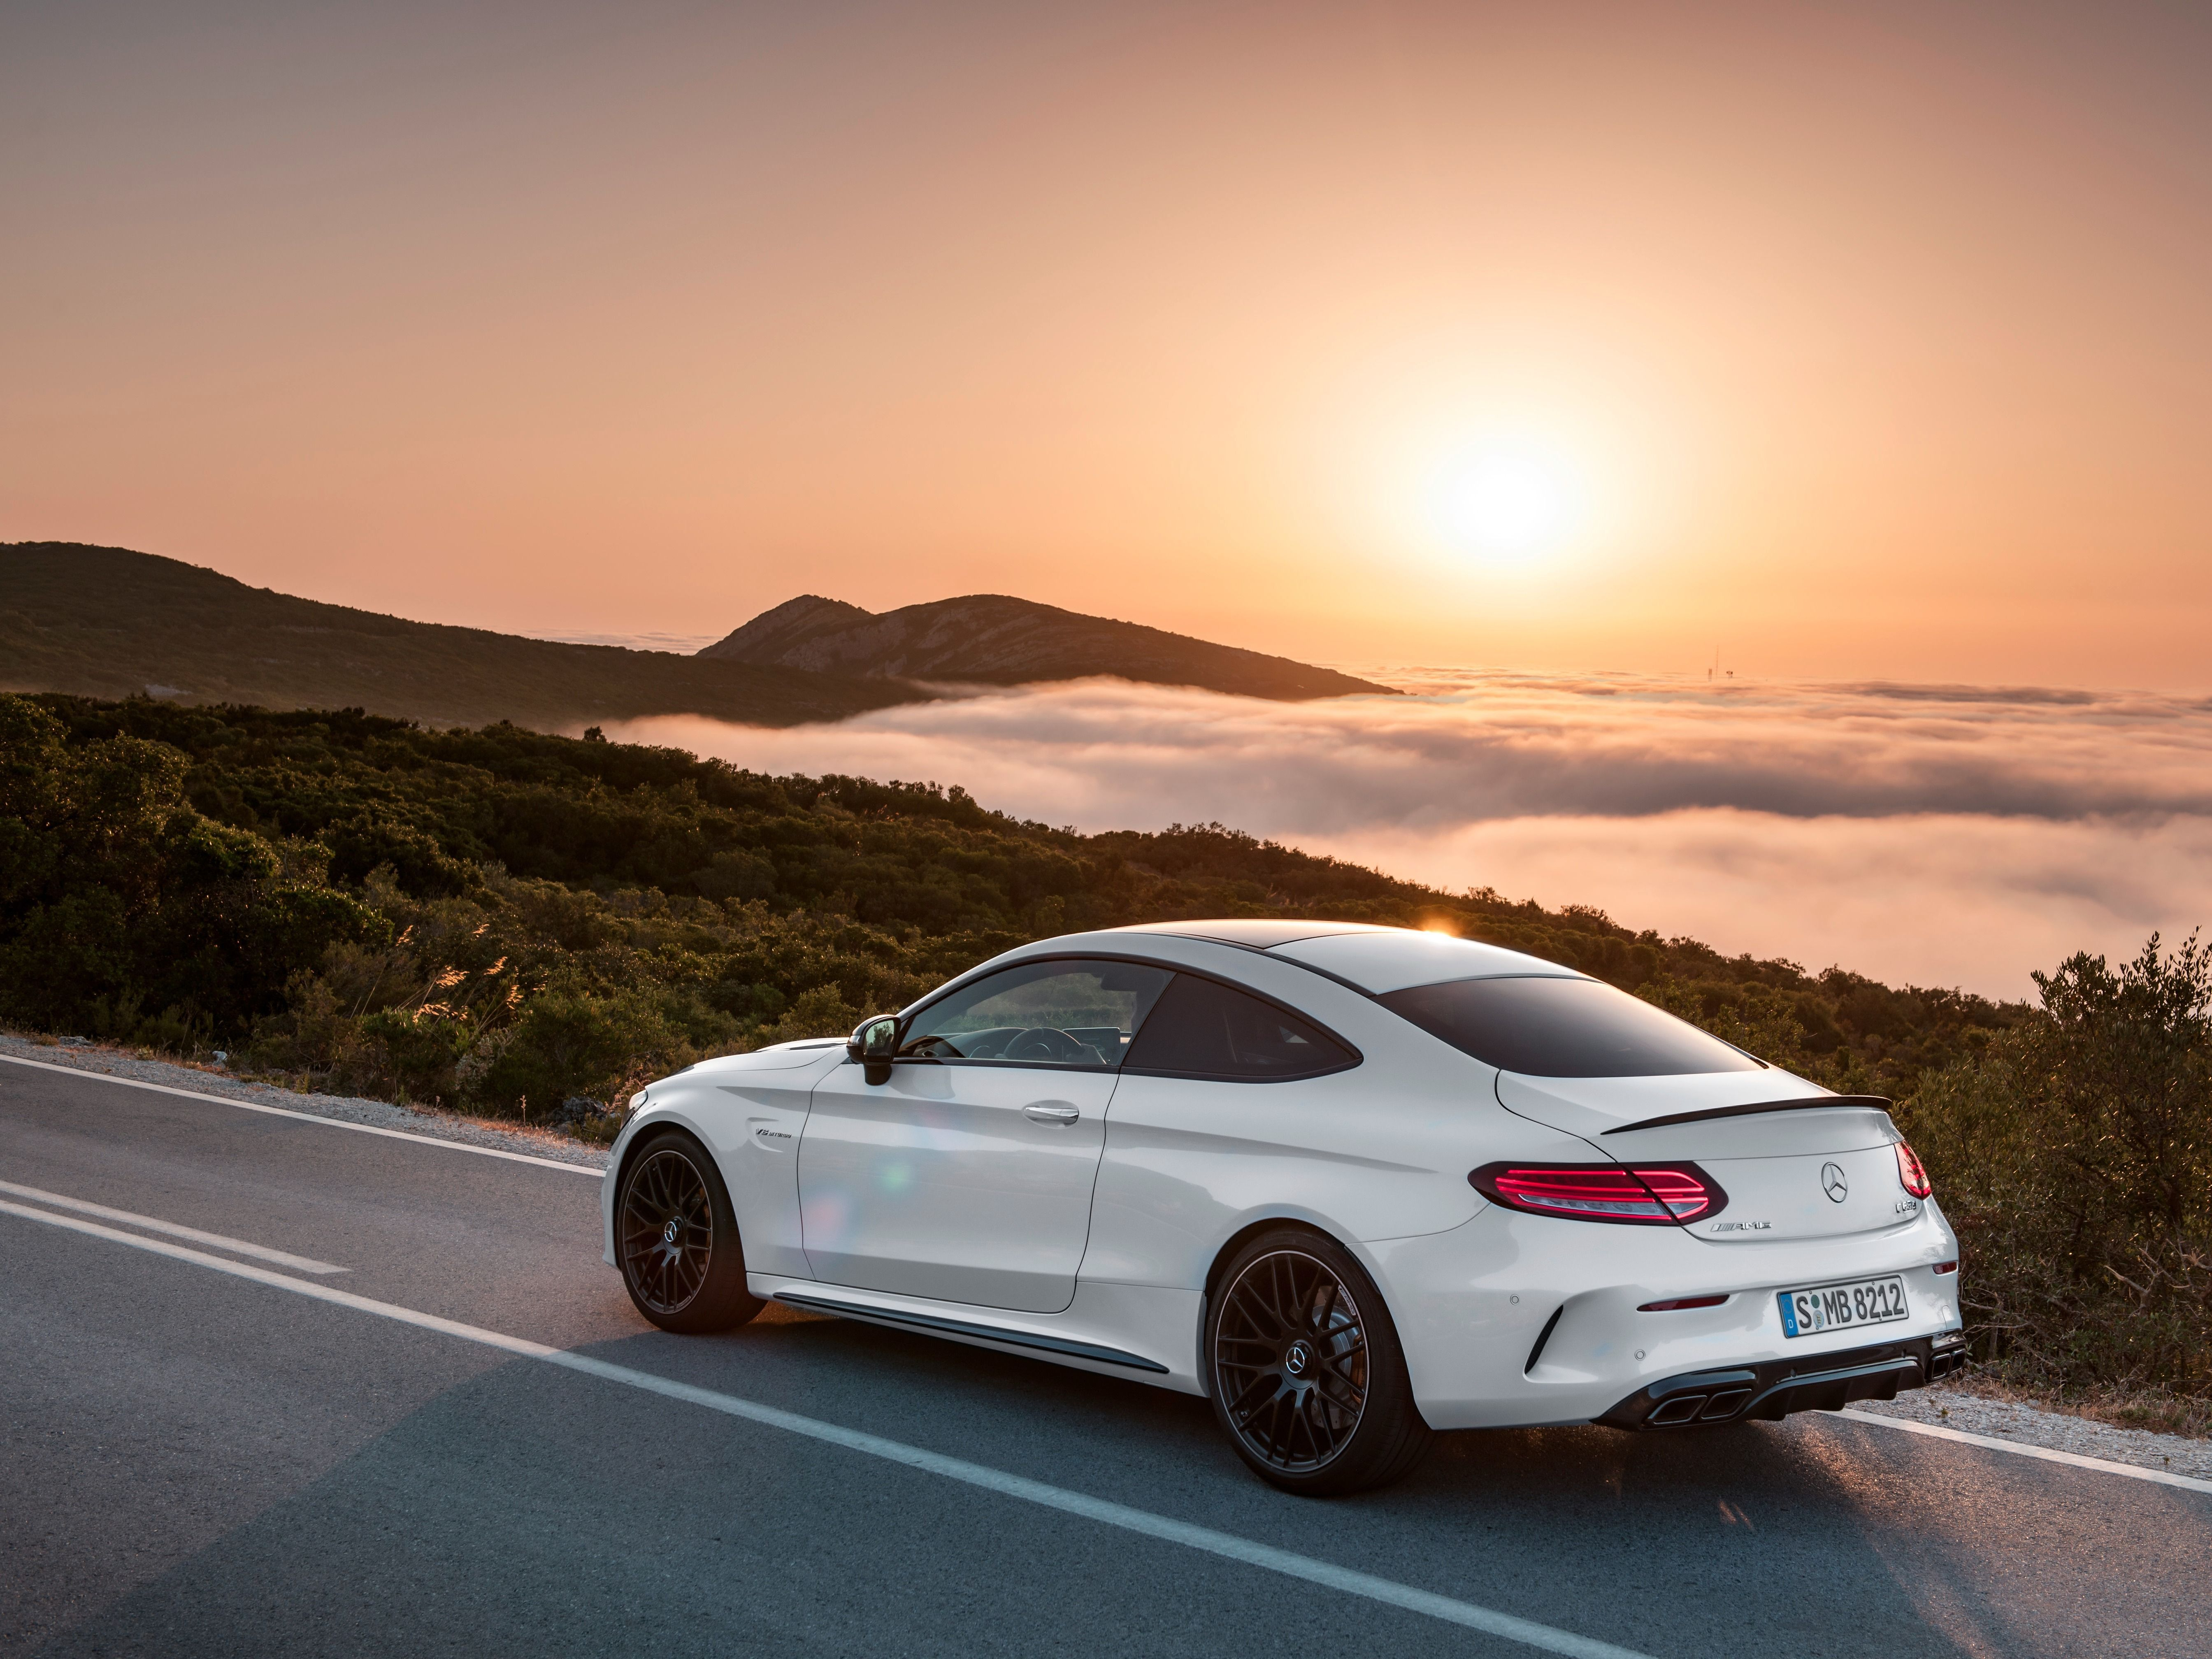 The New Mercedes C Class Coupe Is A Ridiculously Powerful German Muscle Car Mercedes C Class Coupe Mercedes Benz Coupe Mercedes Benz C63 Amg